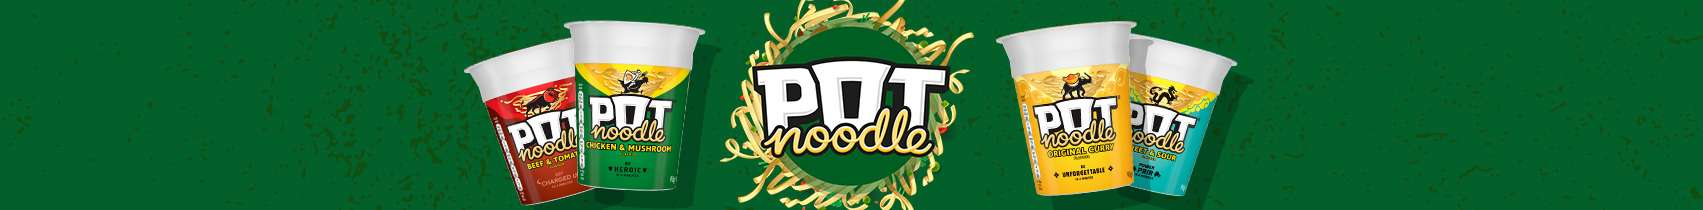 Pot Noodle Web Banner - Desktop